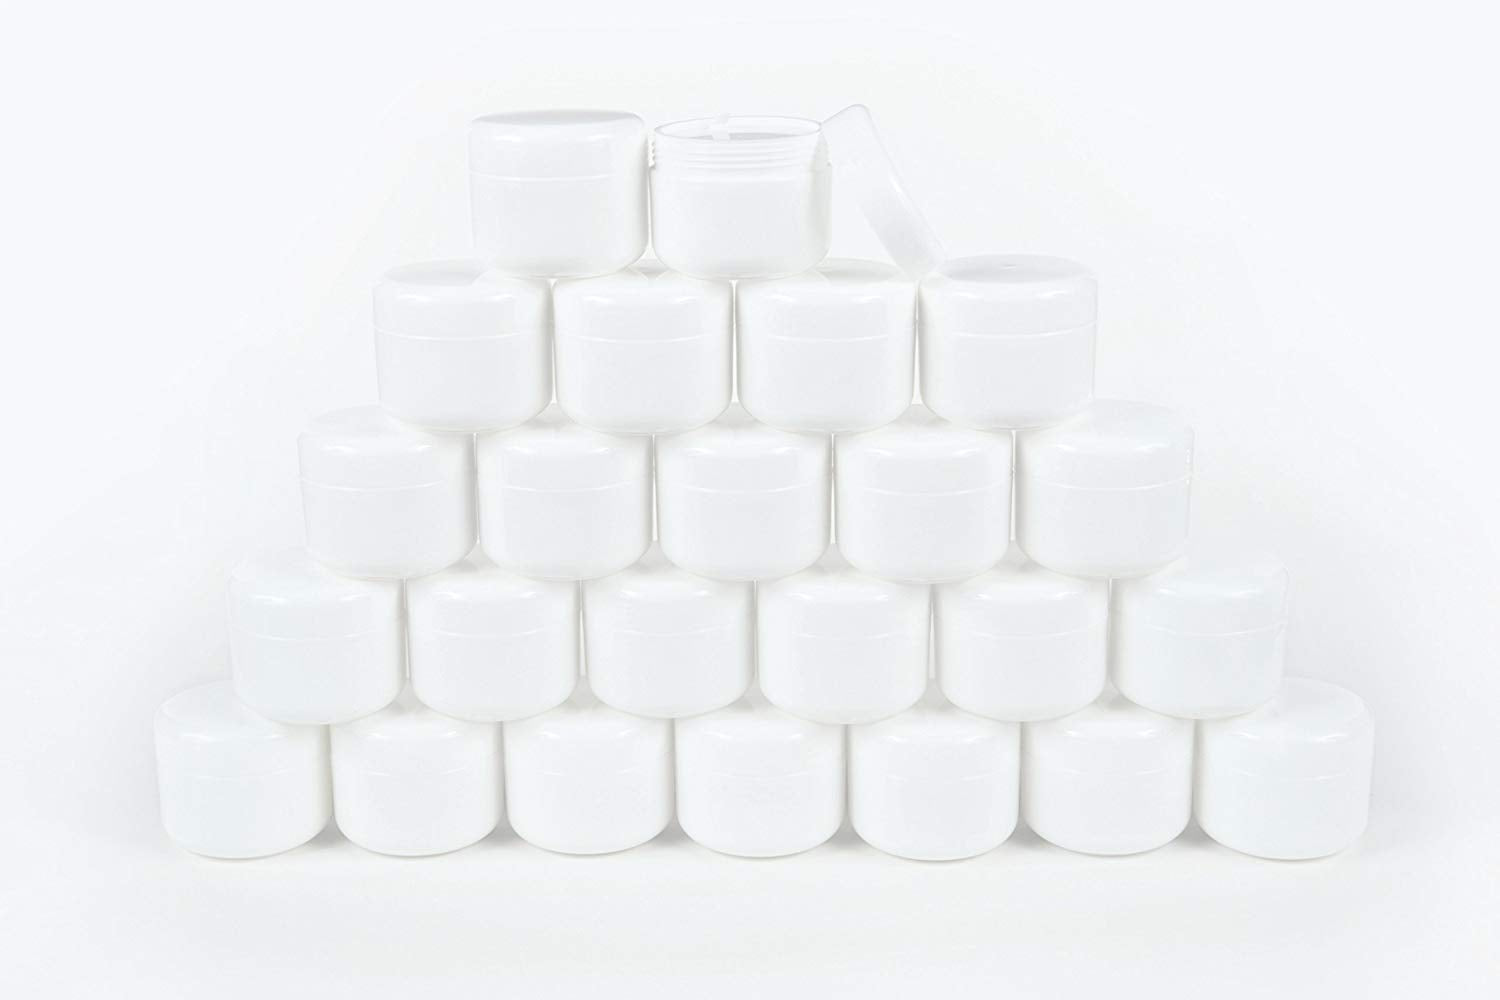 Vivaplex 2oz Glass Refill Cosmetic Jars, Liners and Dome Lids - Set of 24 - White (V2WNM-24)